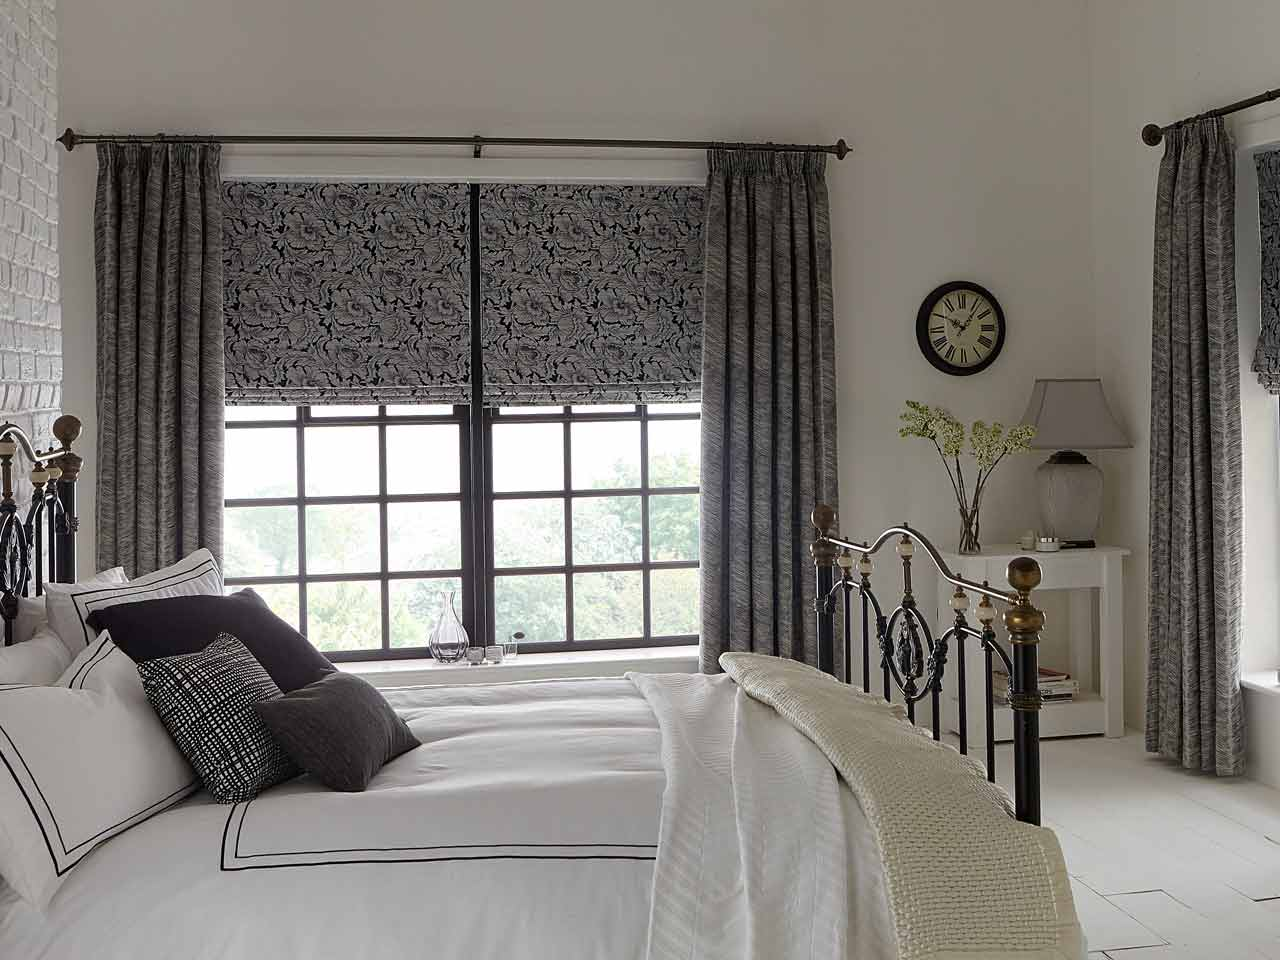 Style Studio's Feather Noir curtains with a classic pencil pleat